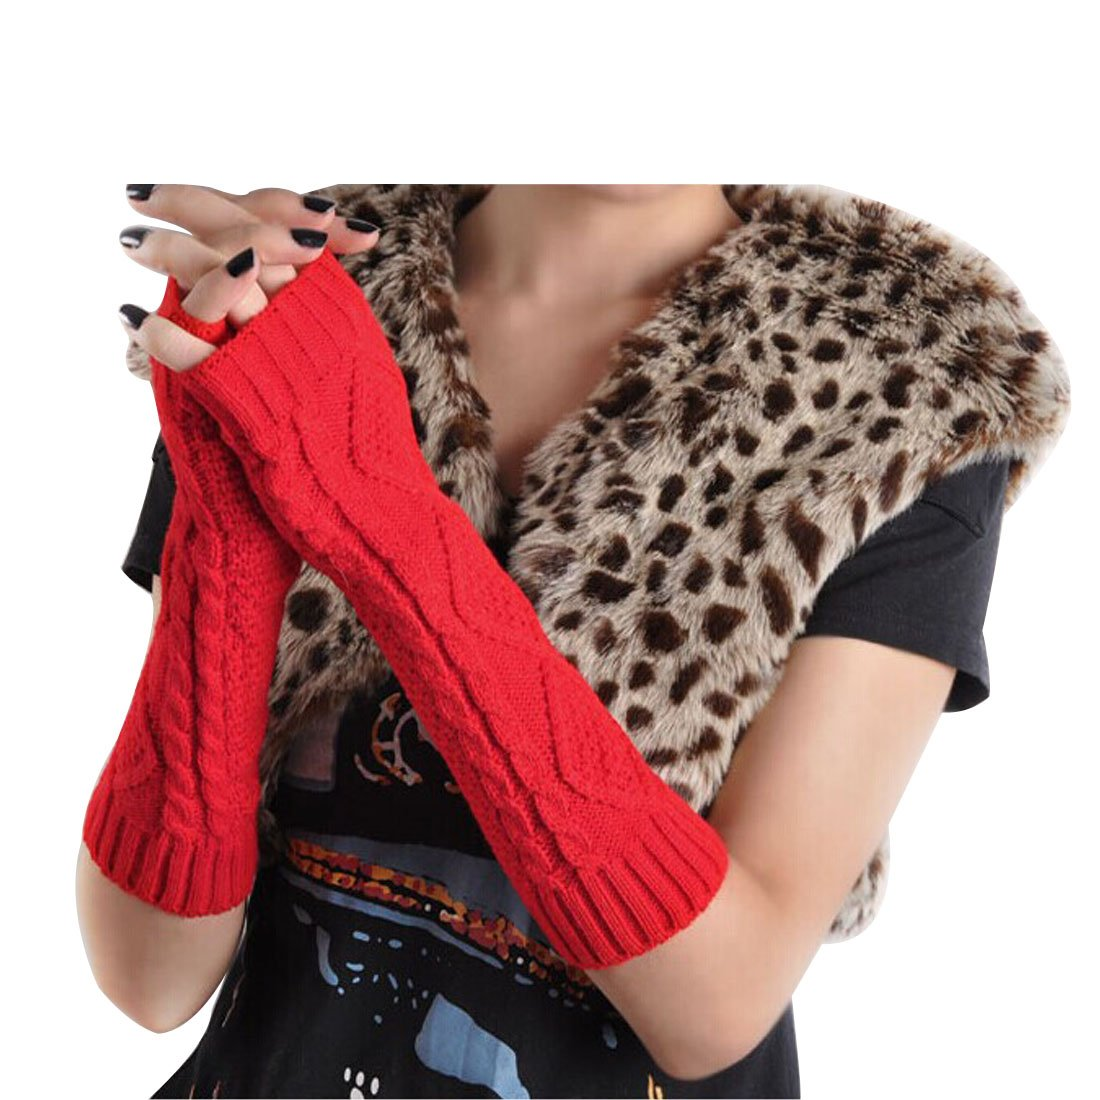 LerBen Women's Knitted Woolen Arm Warmers Long Warm Fingerless Gloves